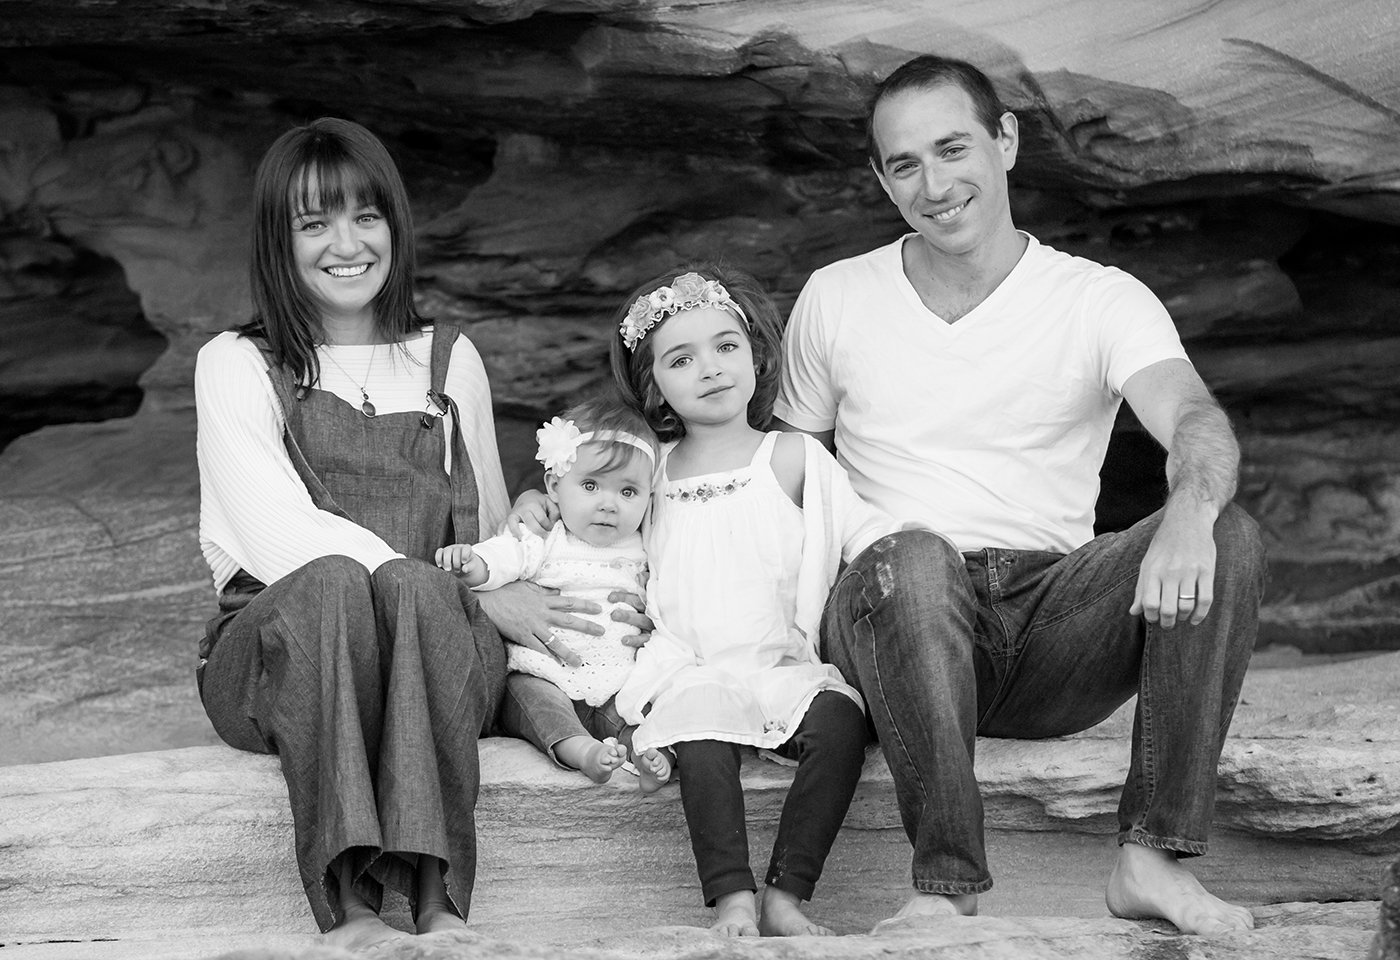 Black and white family portrait image